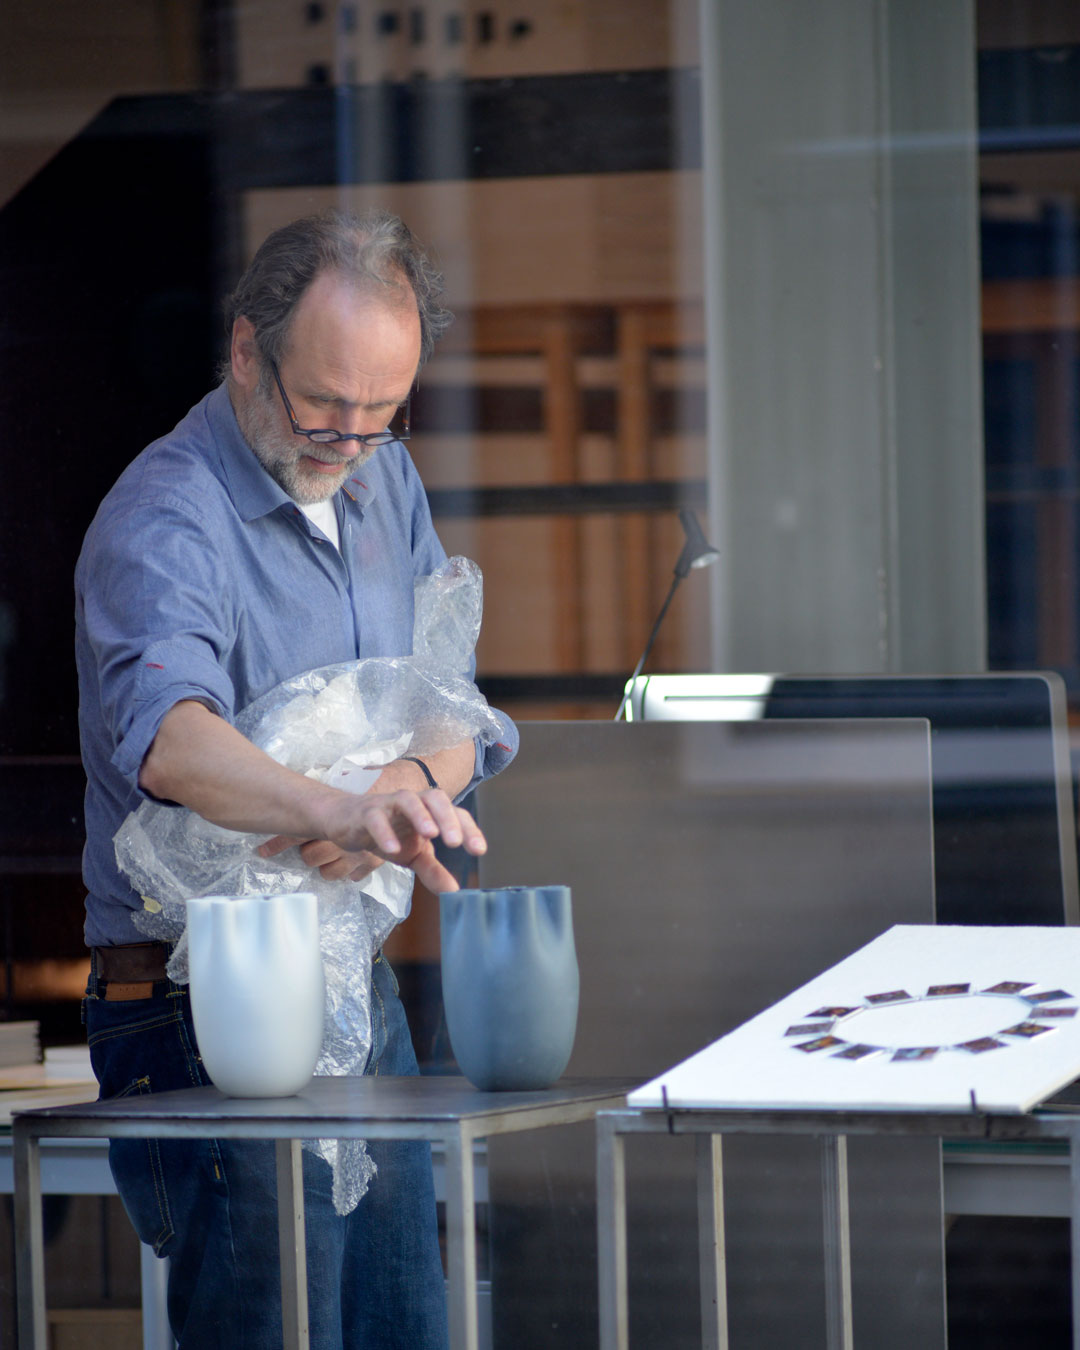 Herman Hermsen setting up his exhibition at Marzee in March 2019